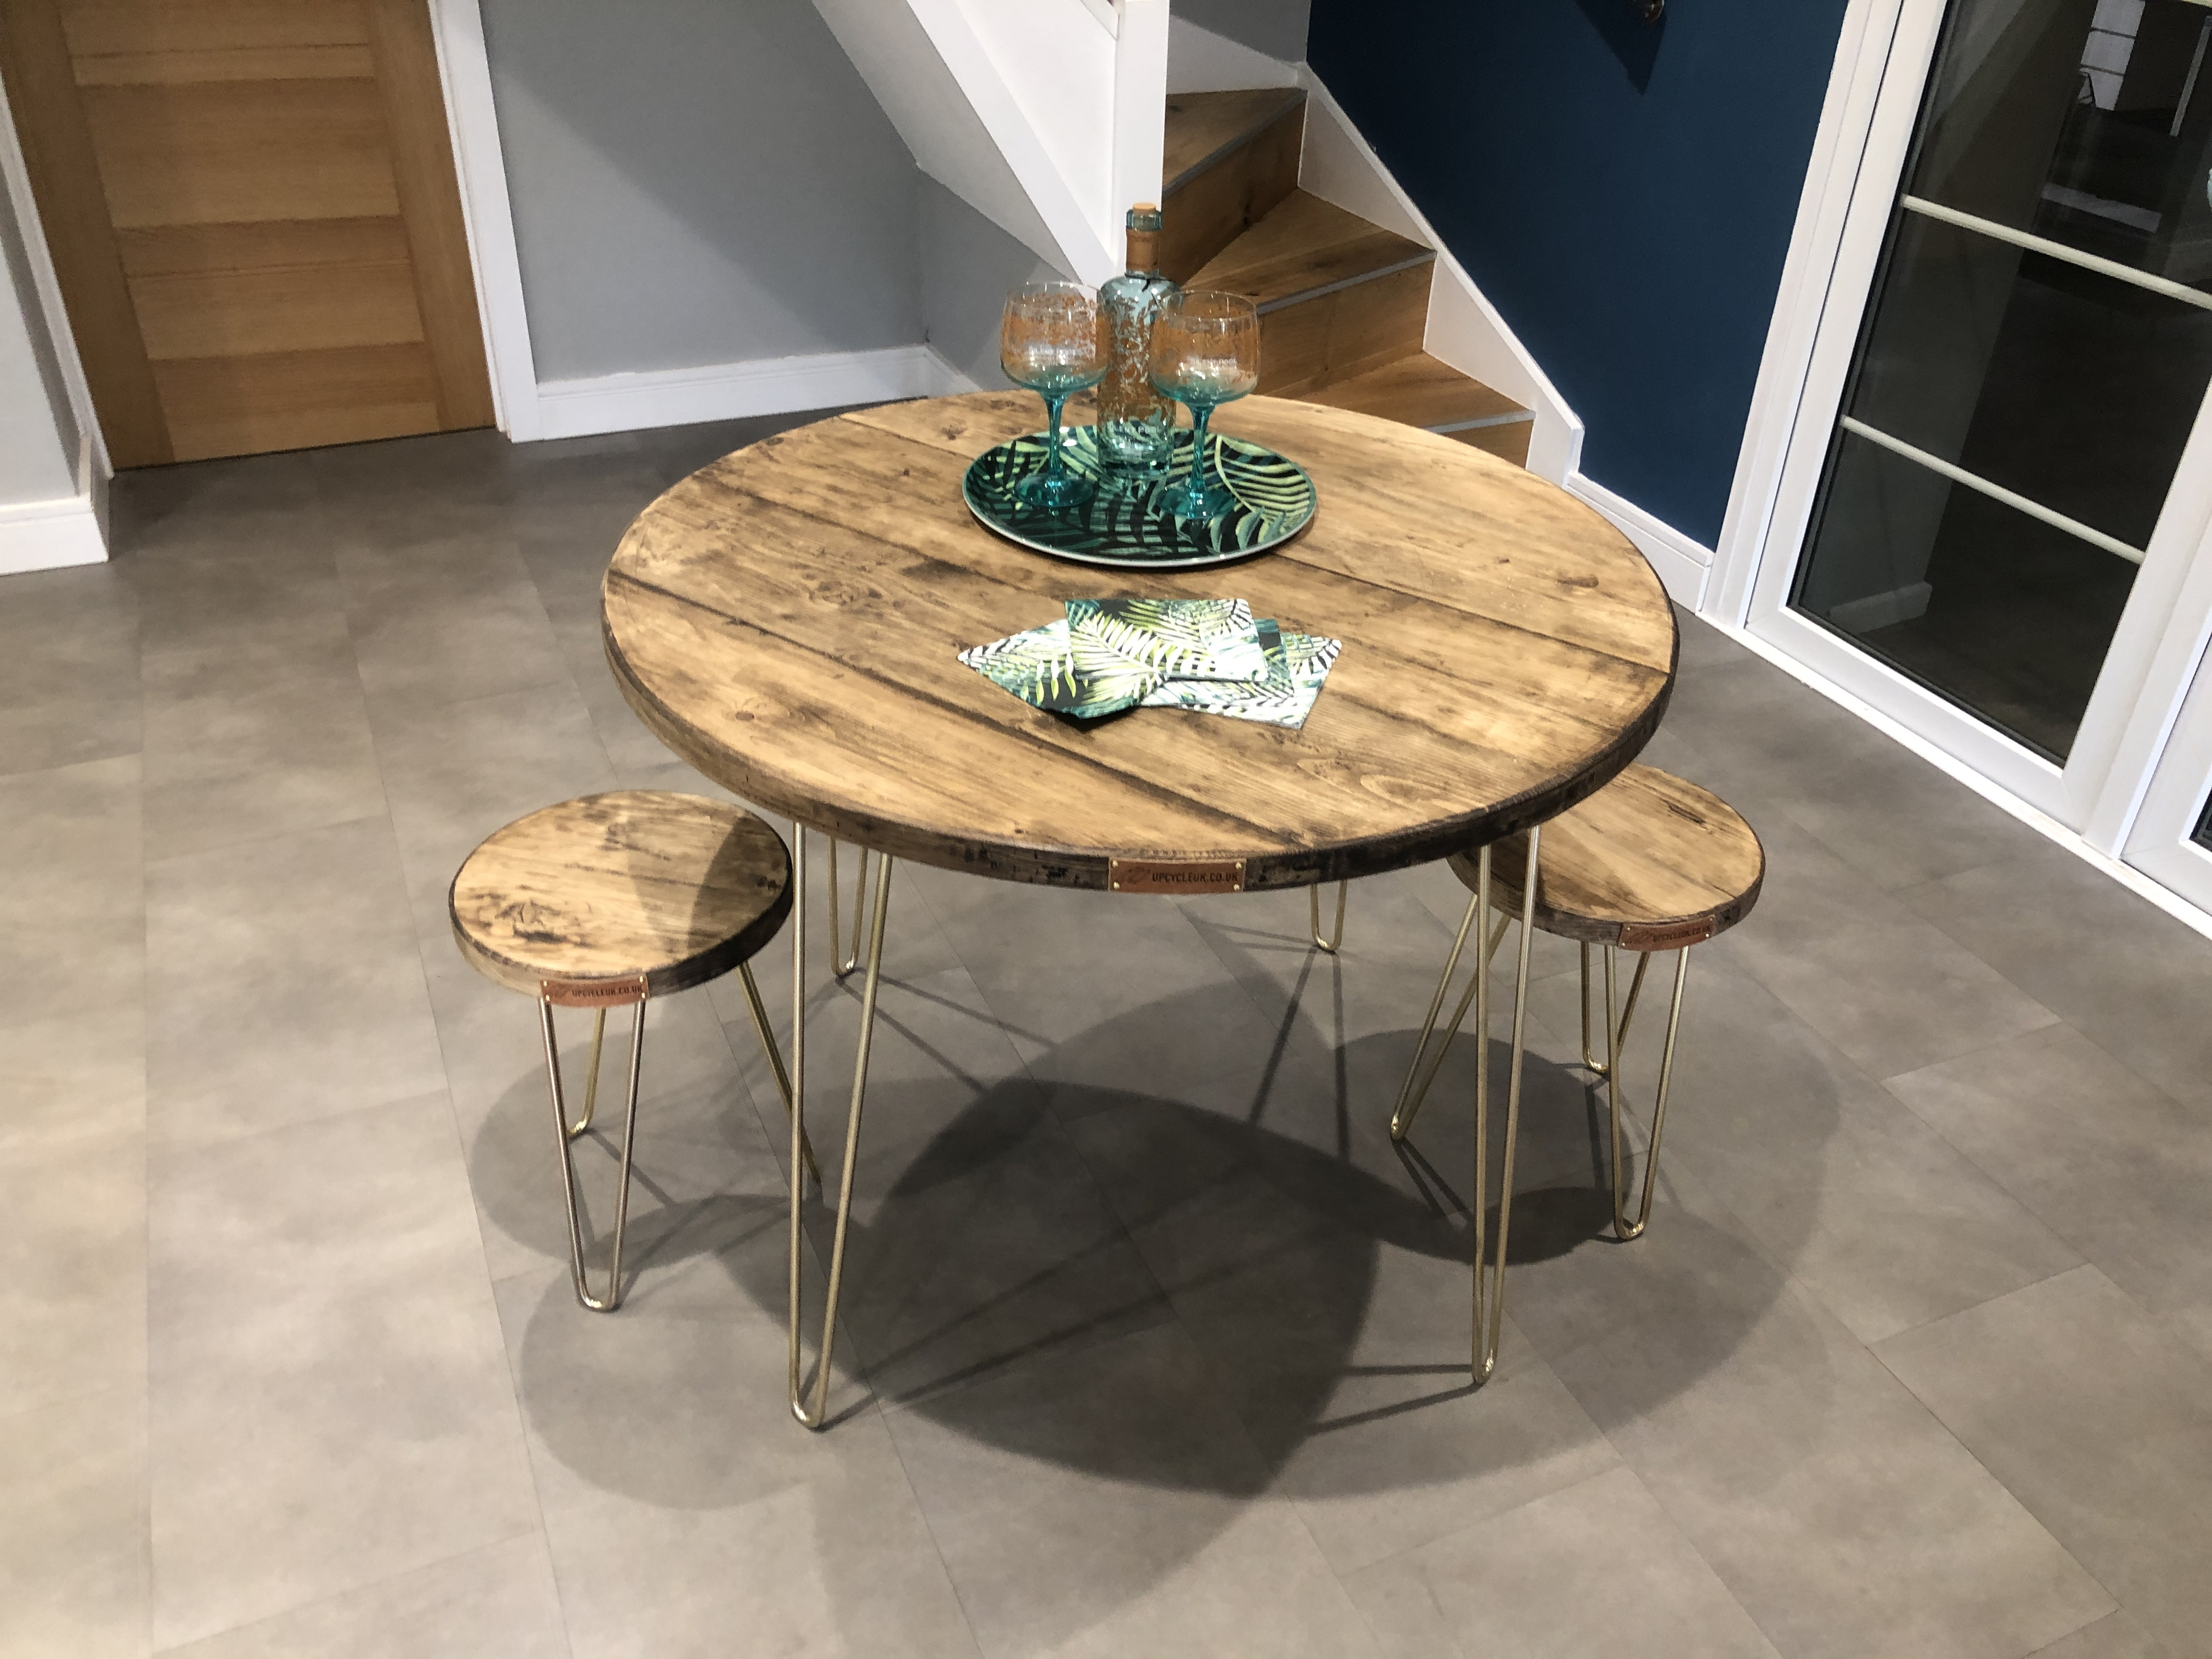 Hairpin Round Dining Tables Upcycle U K, Round Kitchen Tables And Chairs Uk